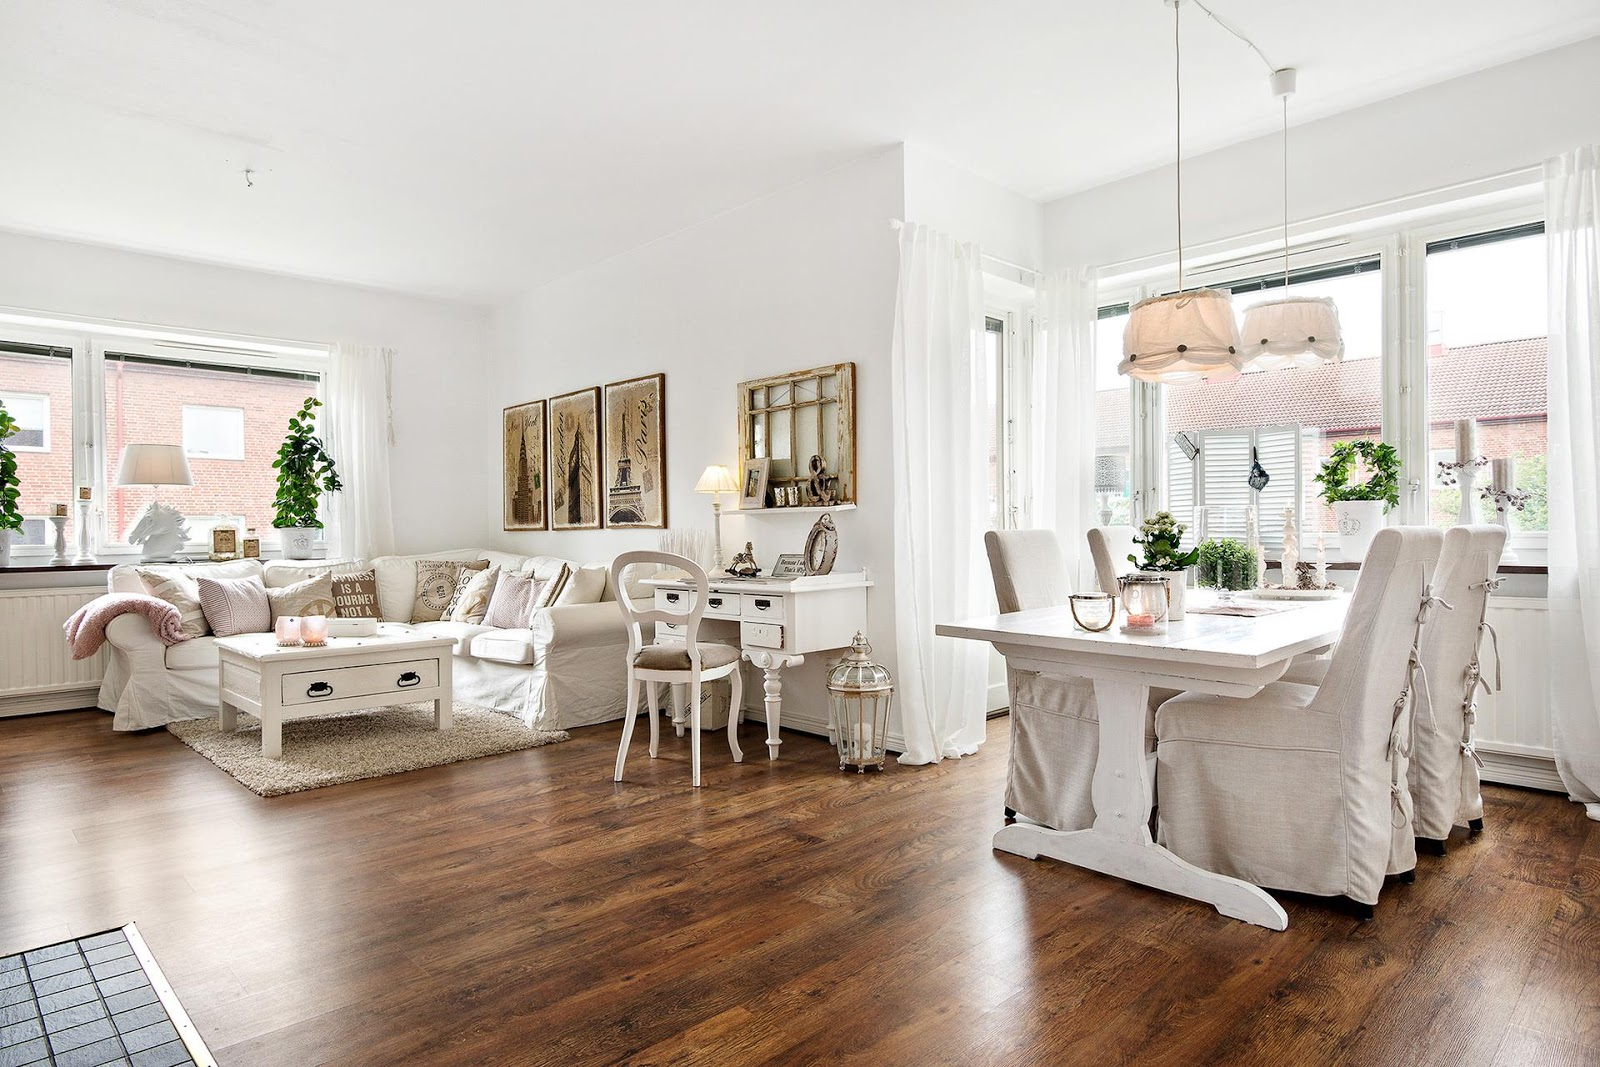 Lovely deco un grand appartement au style shabby chic for Deco appartement chic